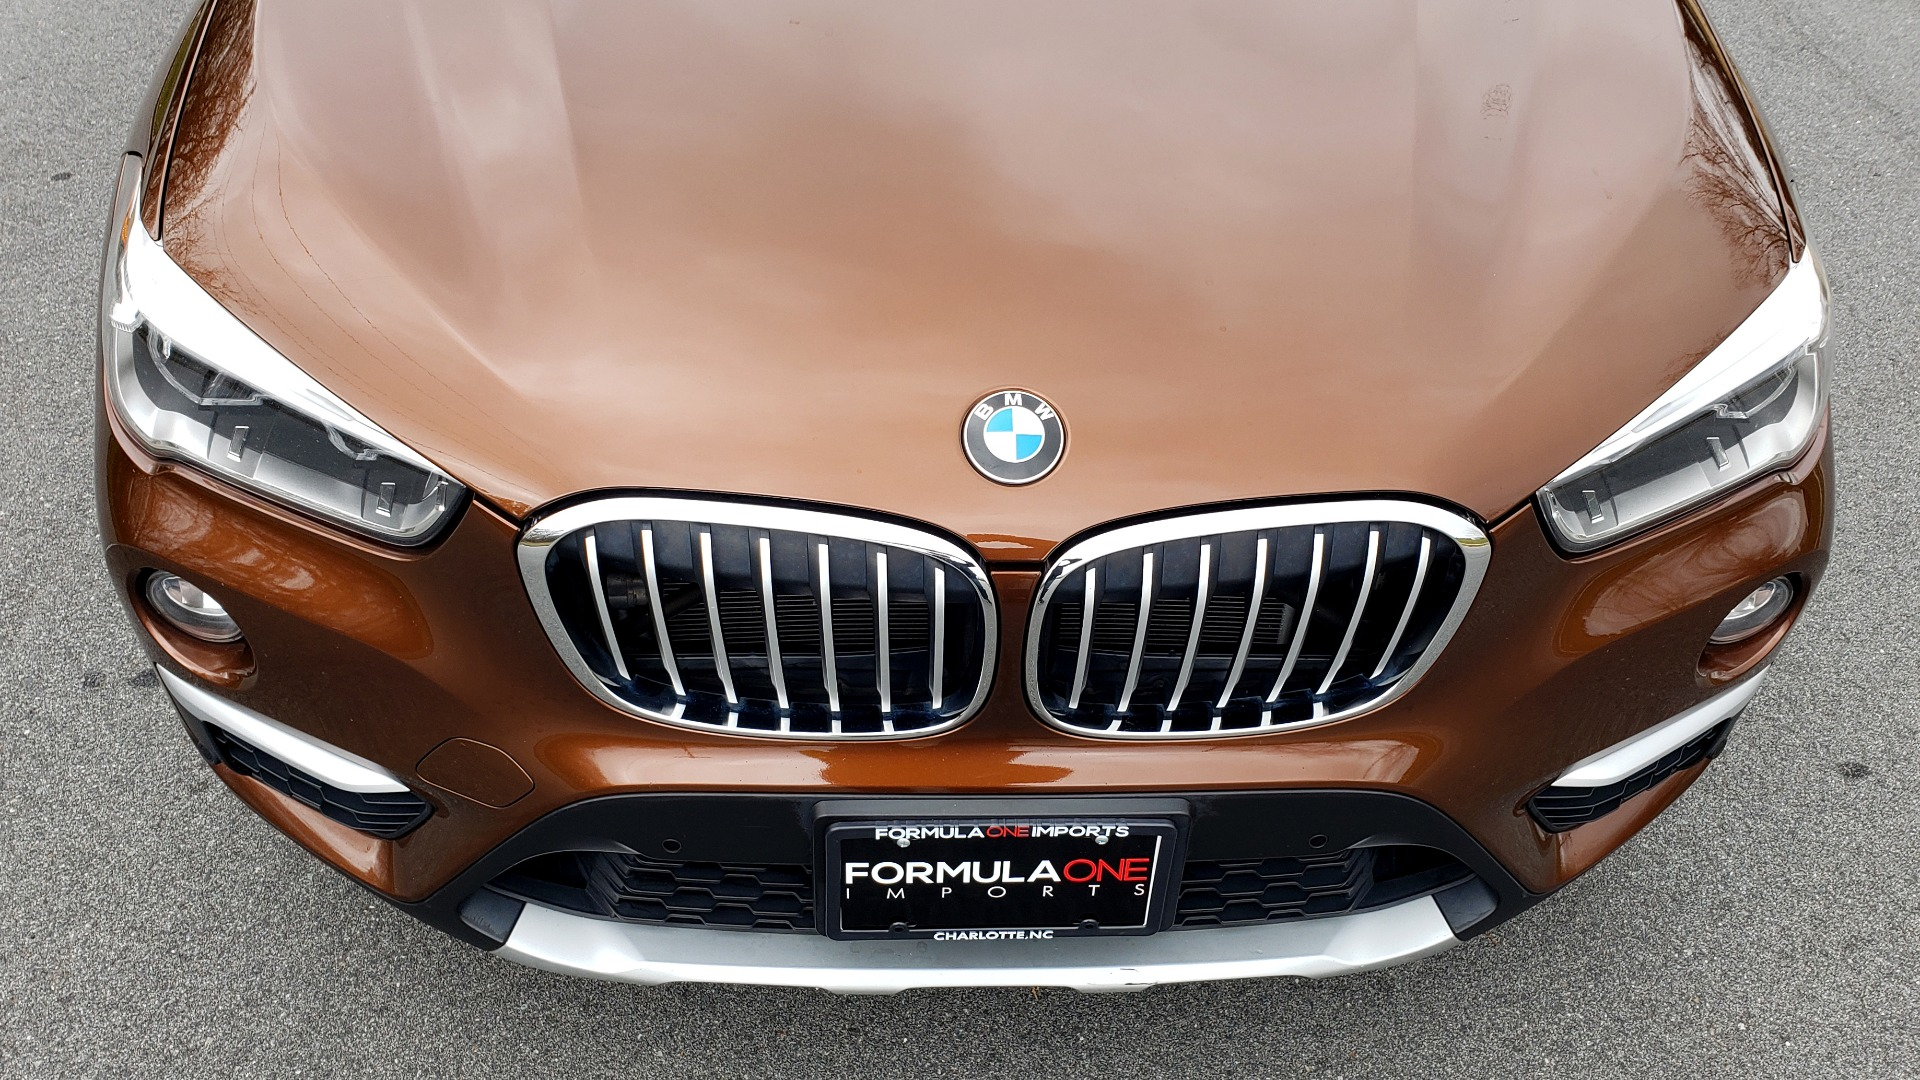 Used 2017 BMW X1 XDRIVE28I / PREM / TECH / DRVR ASST / COLD WTHR / REARVIEW for sale Sold at Formula Imports in Charlotte NC 28227 22